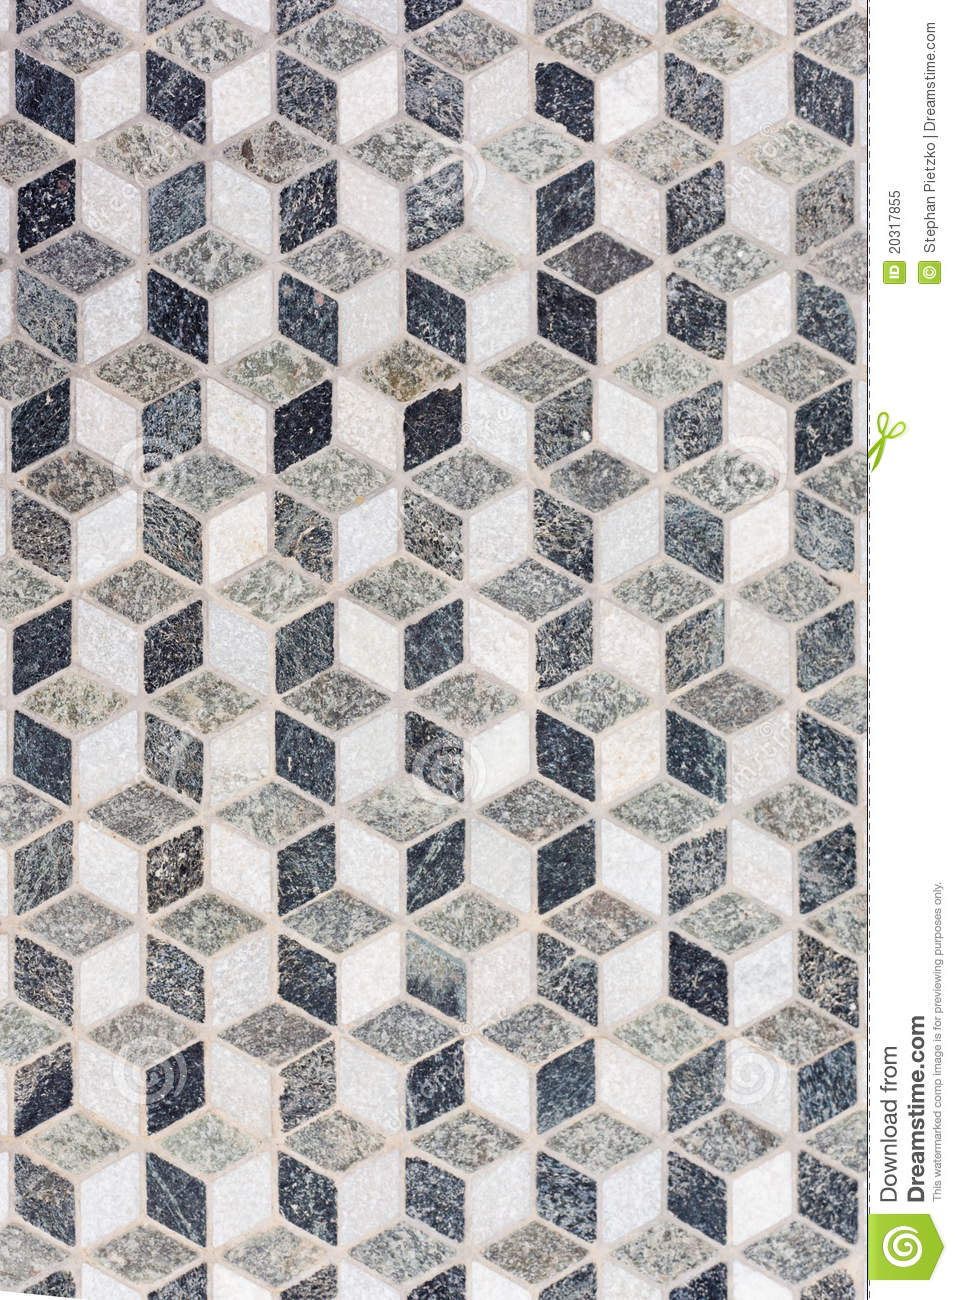 Tile Mosaic Forming 3d Geometric Pattern Stock Image